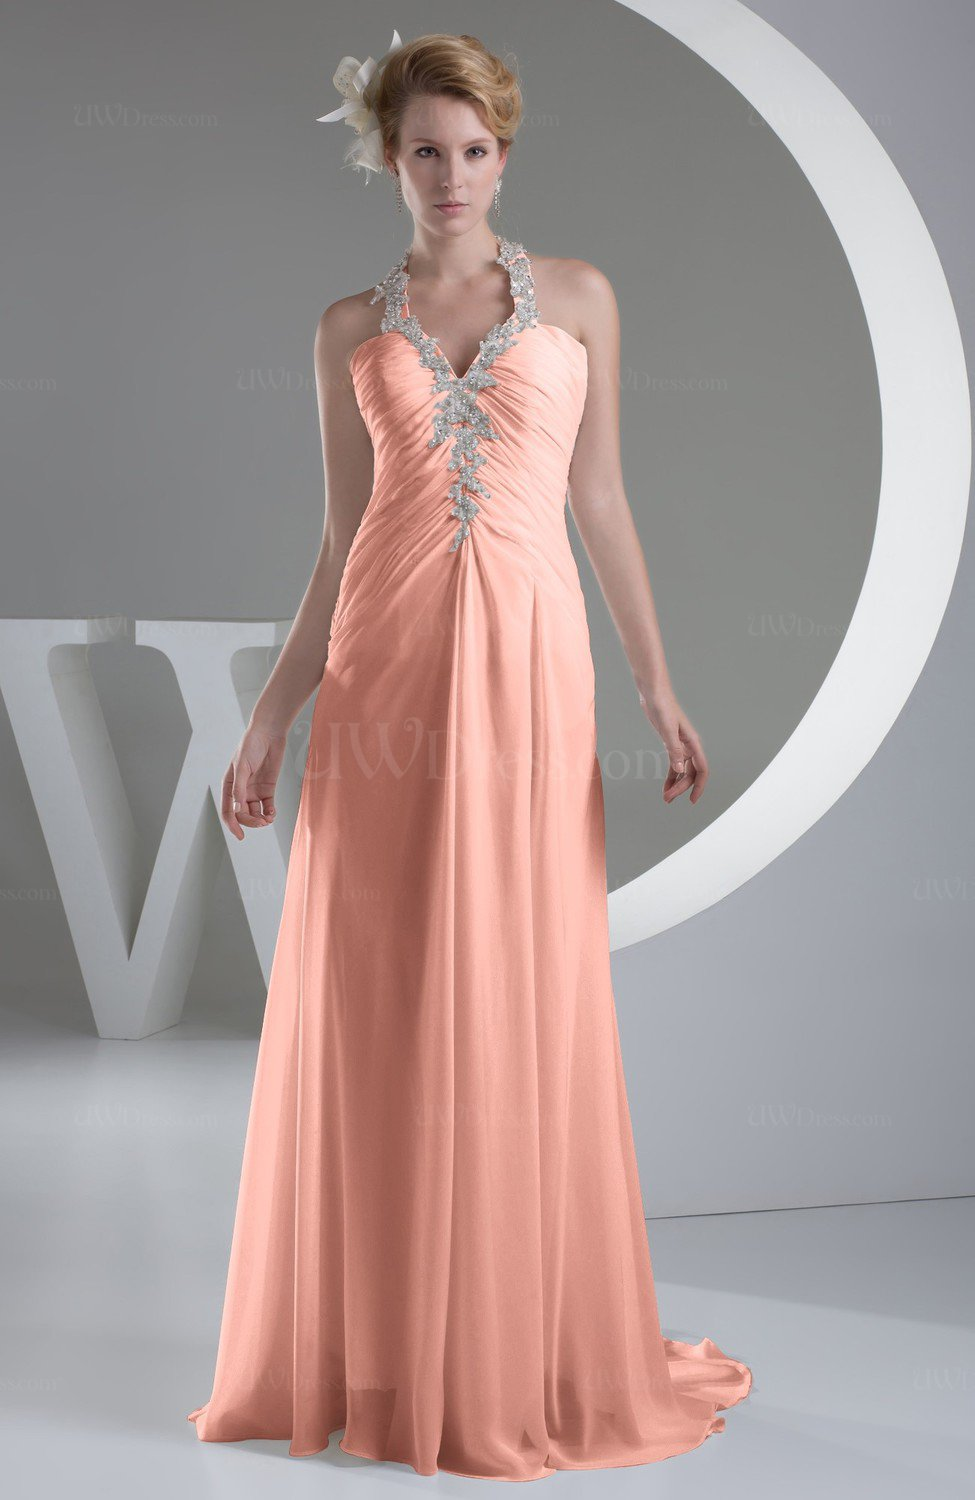 Peach Chiffon Bridesmaid Dress Inexpensive Traditional